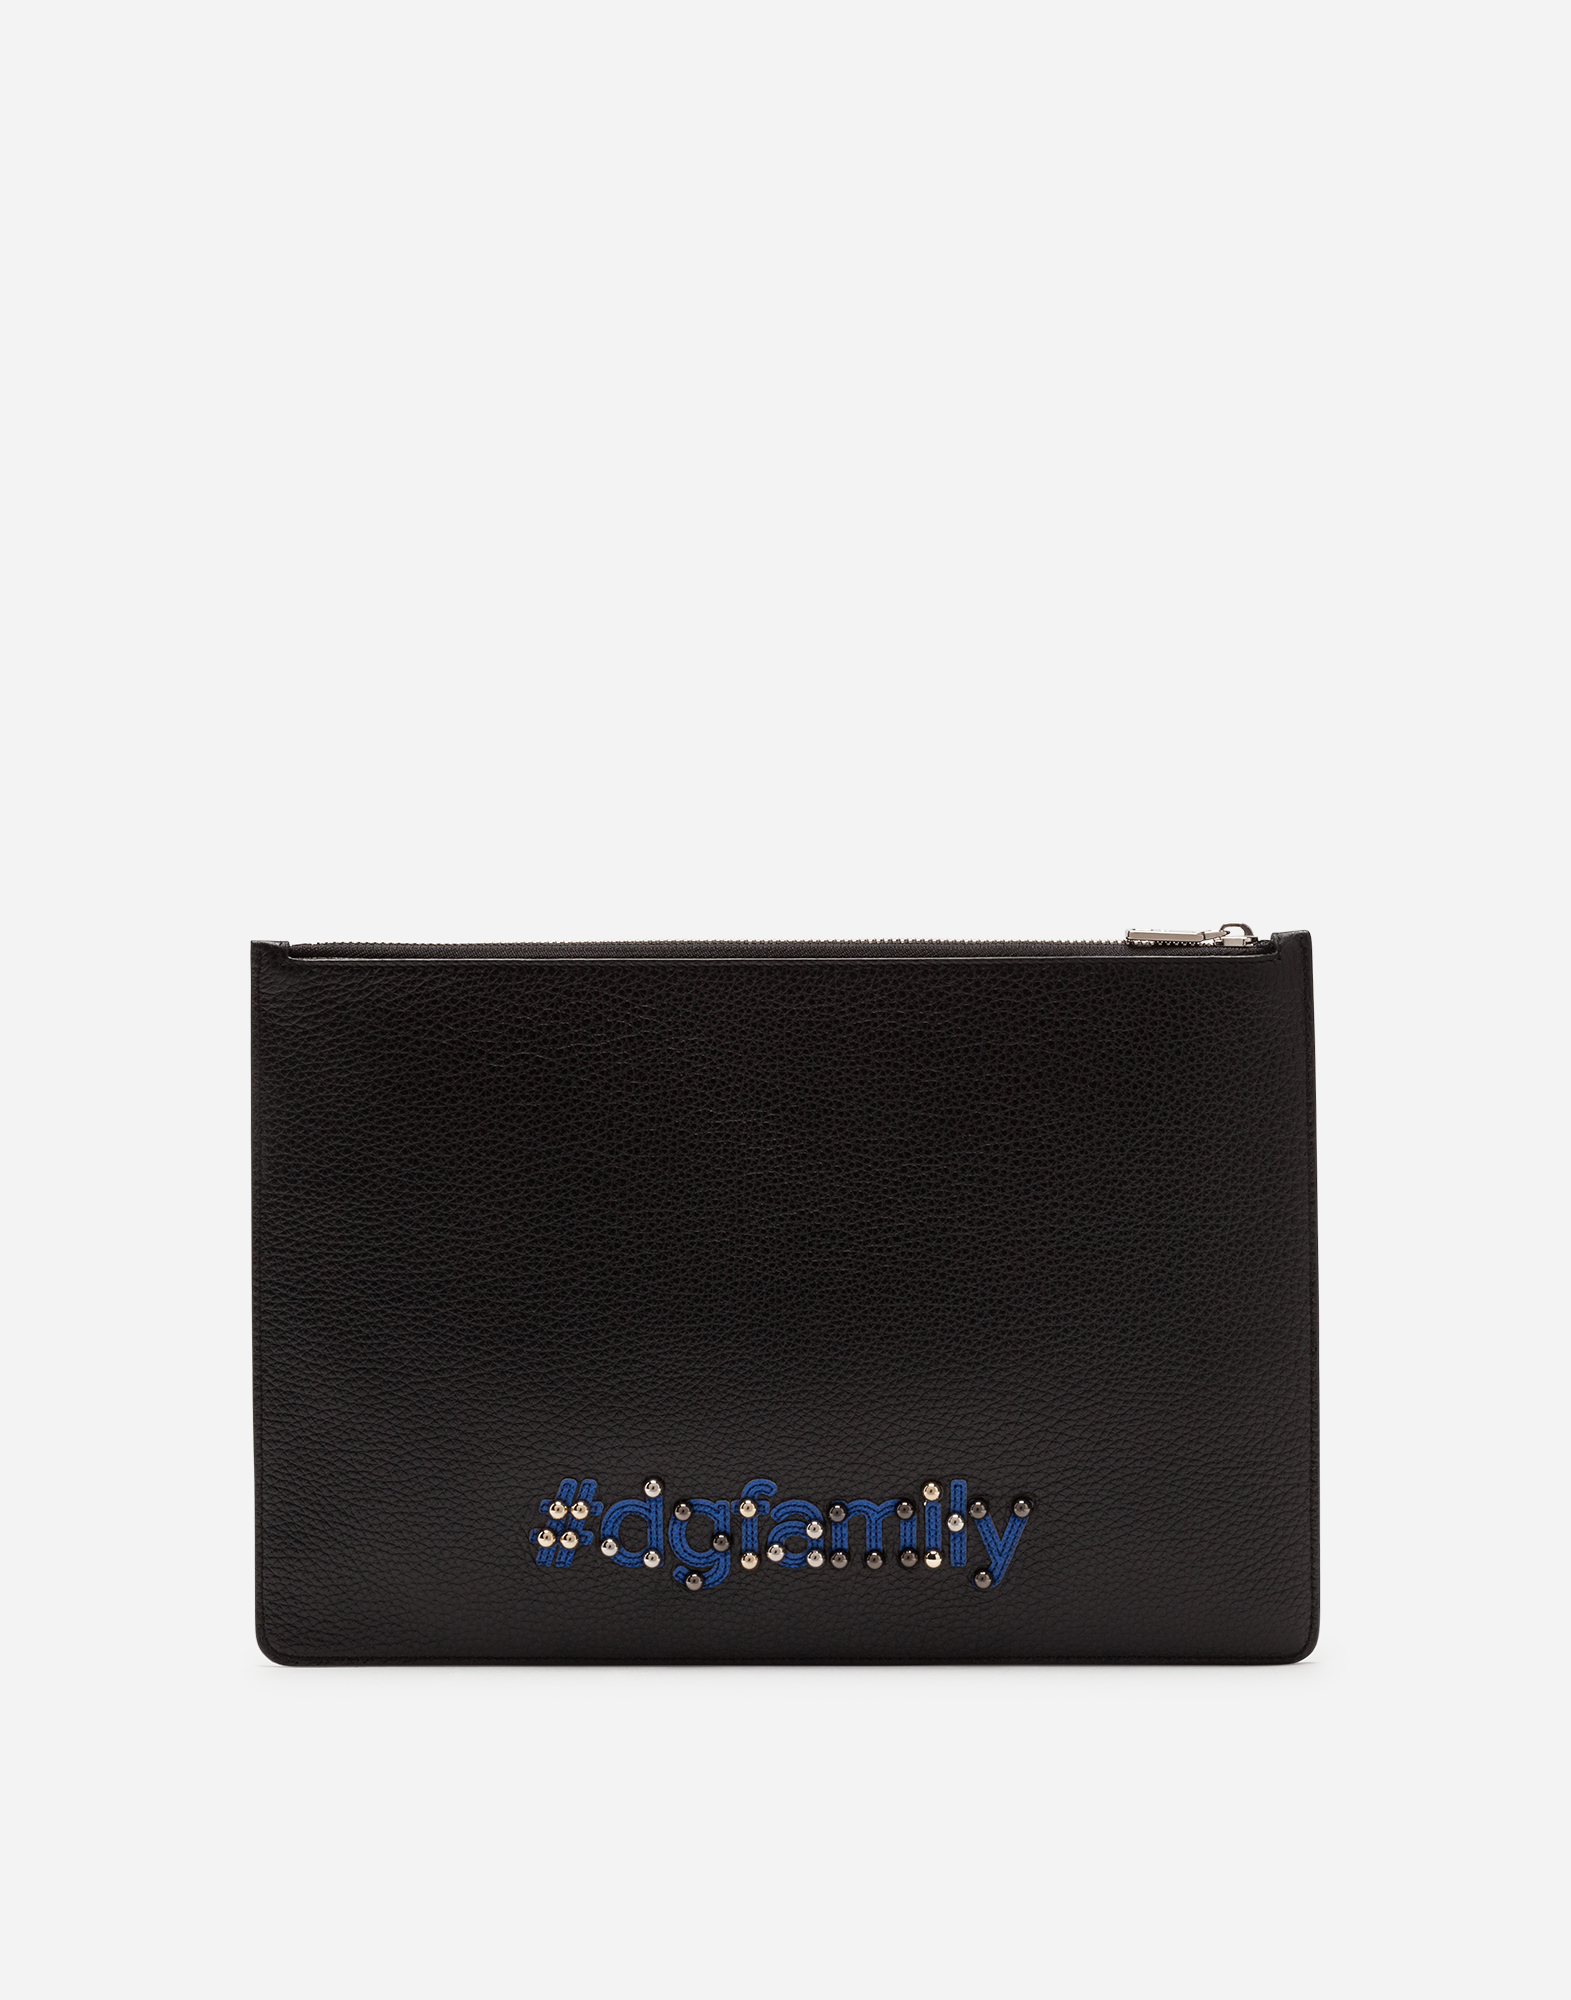 Dolce&Gabbana DOCUMENT HOLDER IN CALFSKIN WITH DESIGNERS' PATCH EMBROIDERY